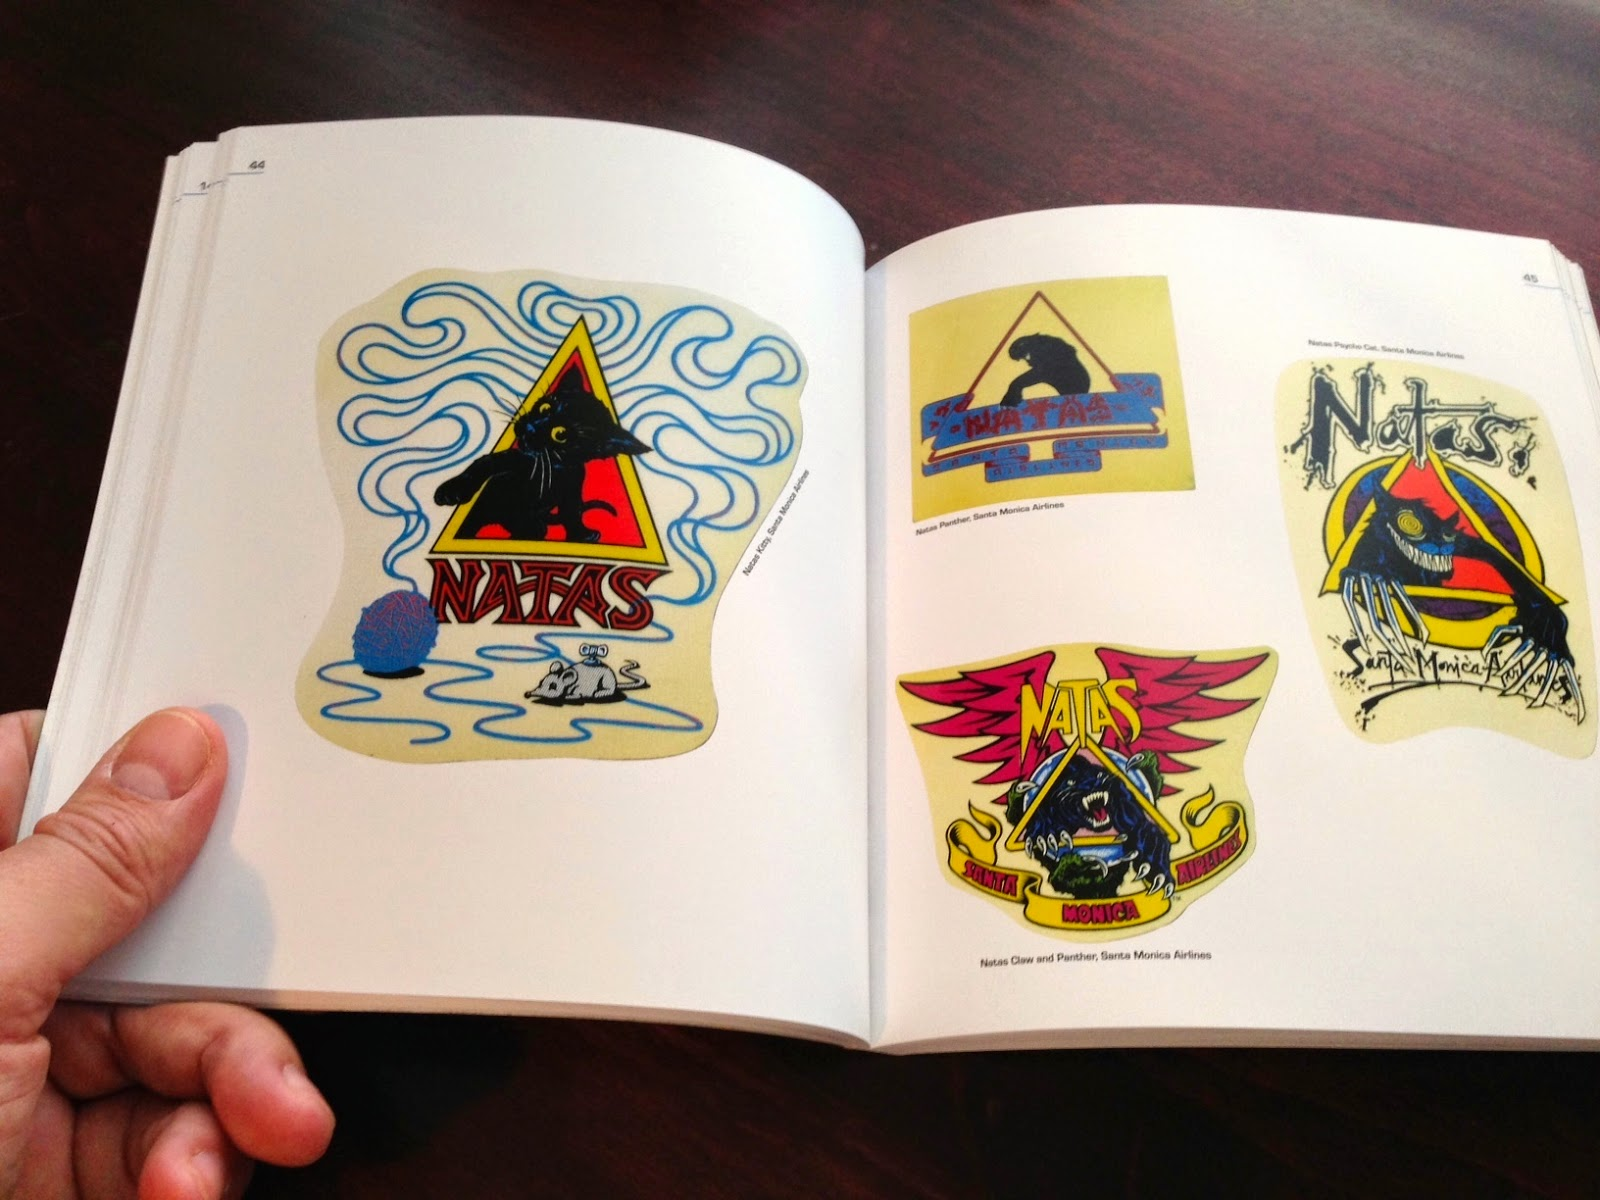 One Of The Big Pluses In The Book Is That It Is Not Onlyprised Of  Pictures Of Skate Stickers (though That Is What It Primarily Is Of Course),